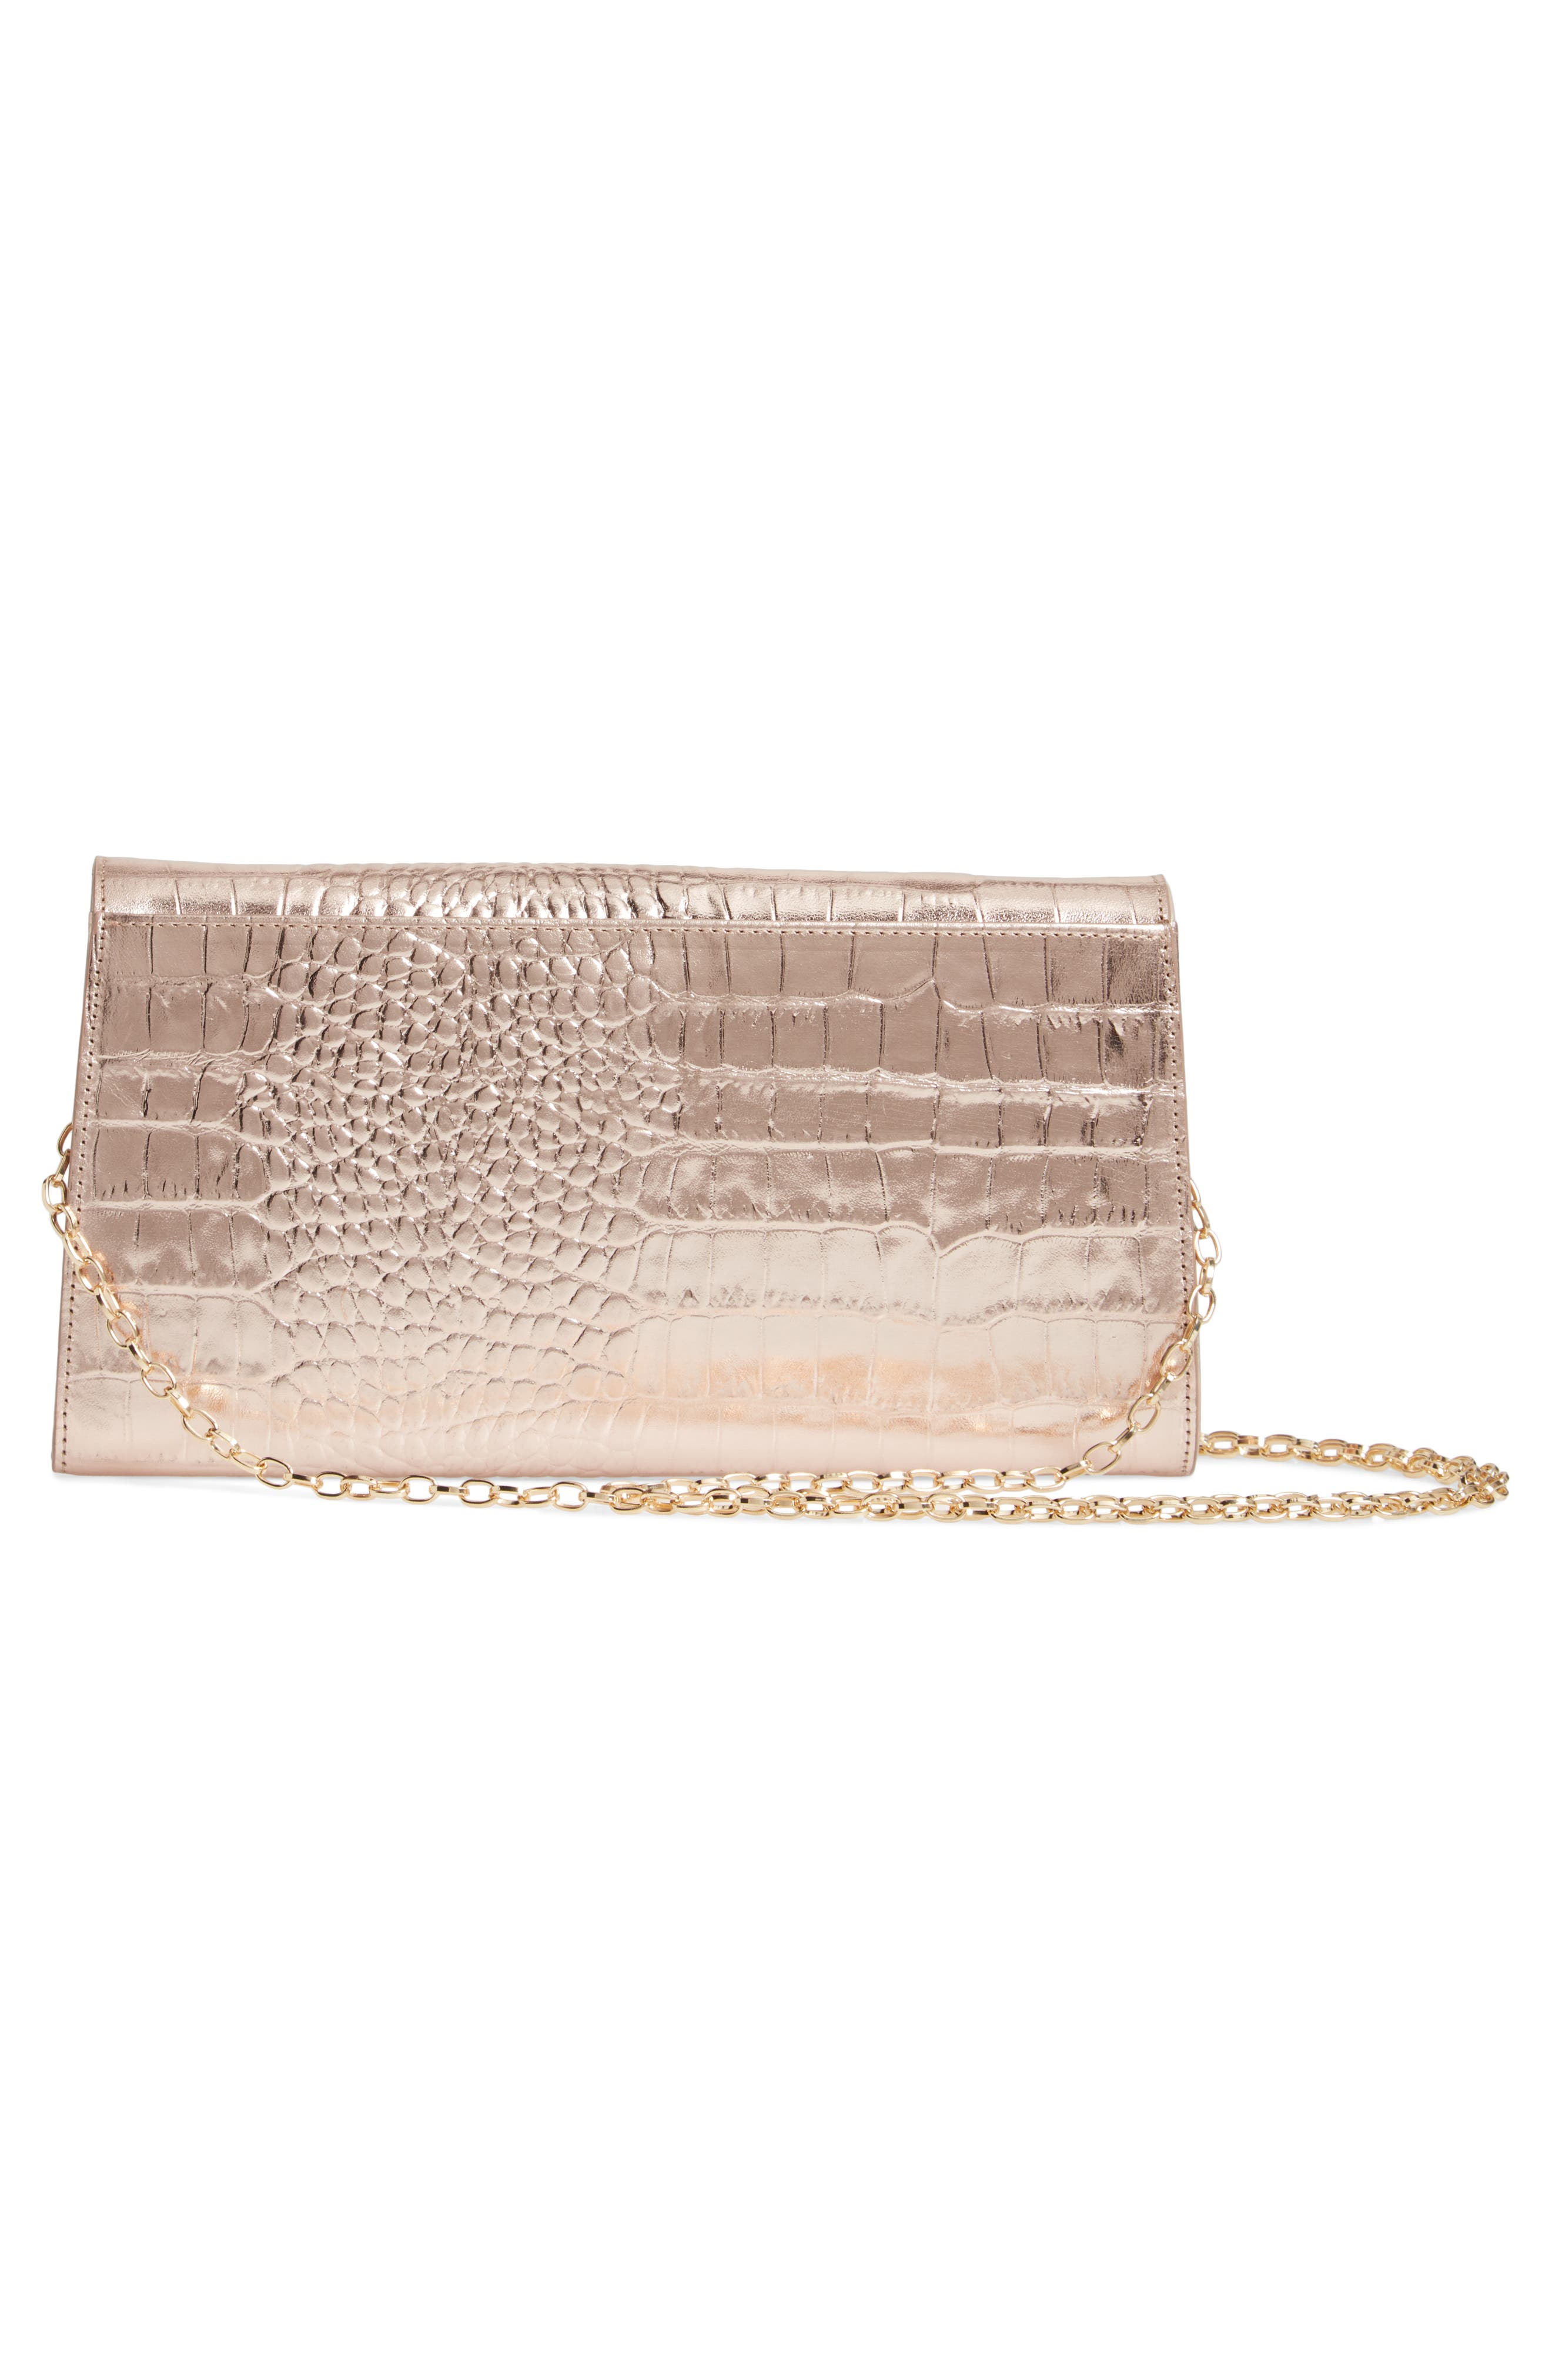 NORDSTROM, Croc Embossed Metallic Leather Clutch, Alternate thumbnail 4, color, 660